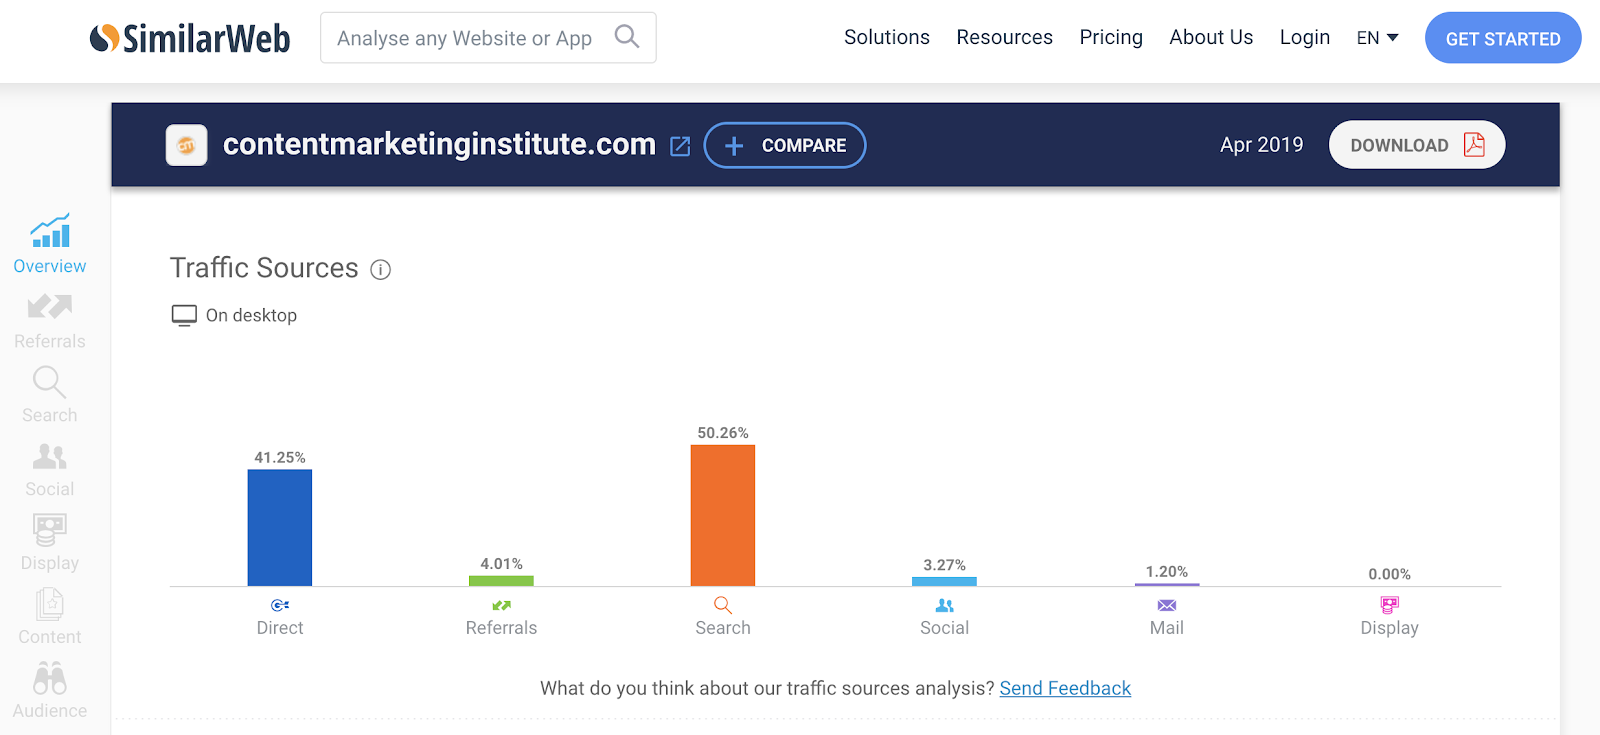 Traffic sources for the Content Marketing Institute website.